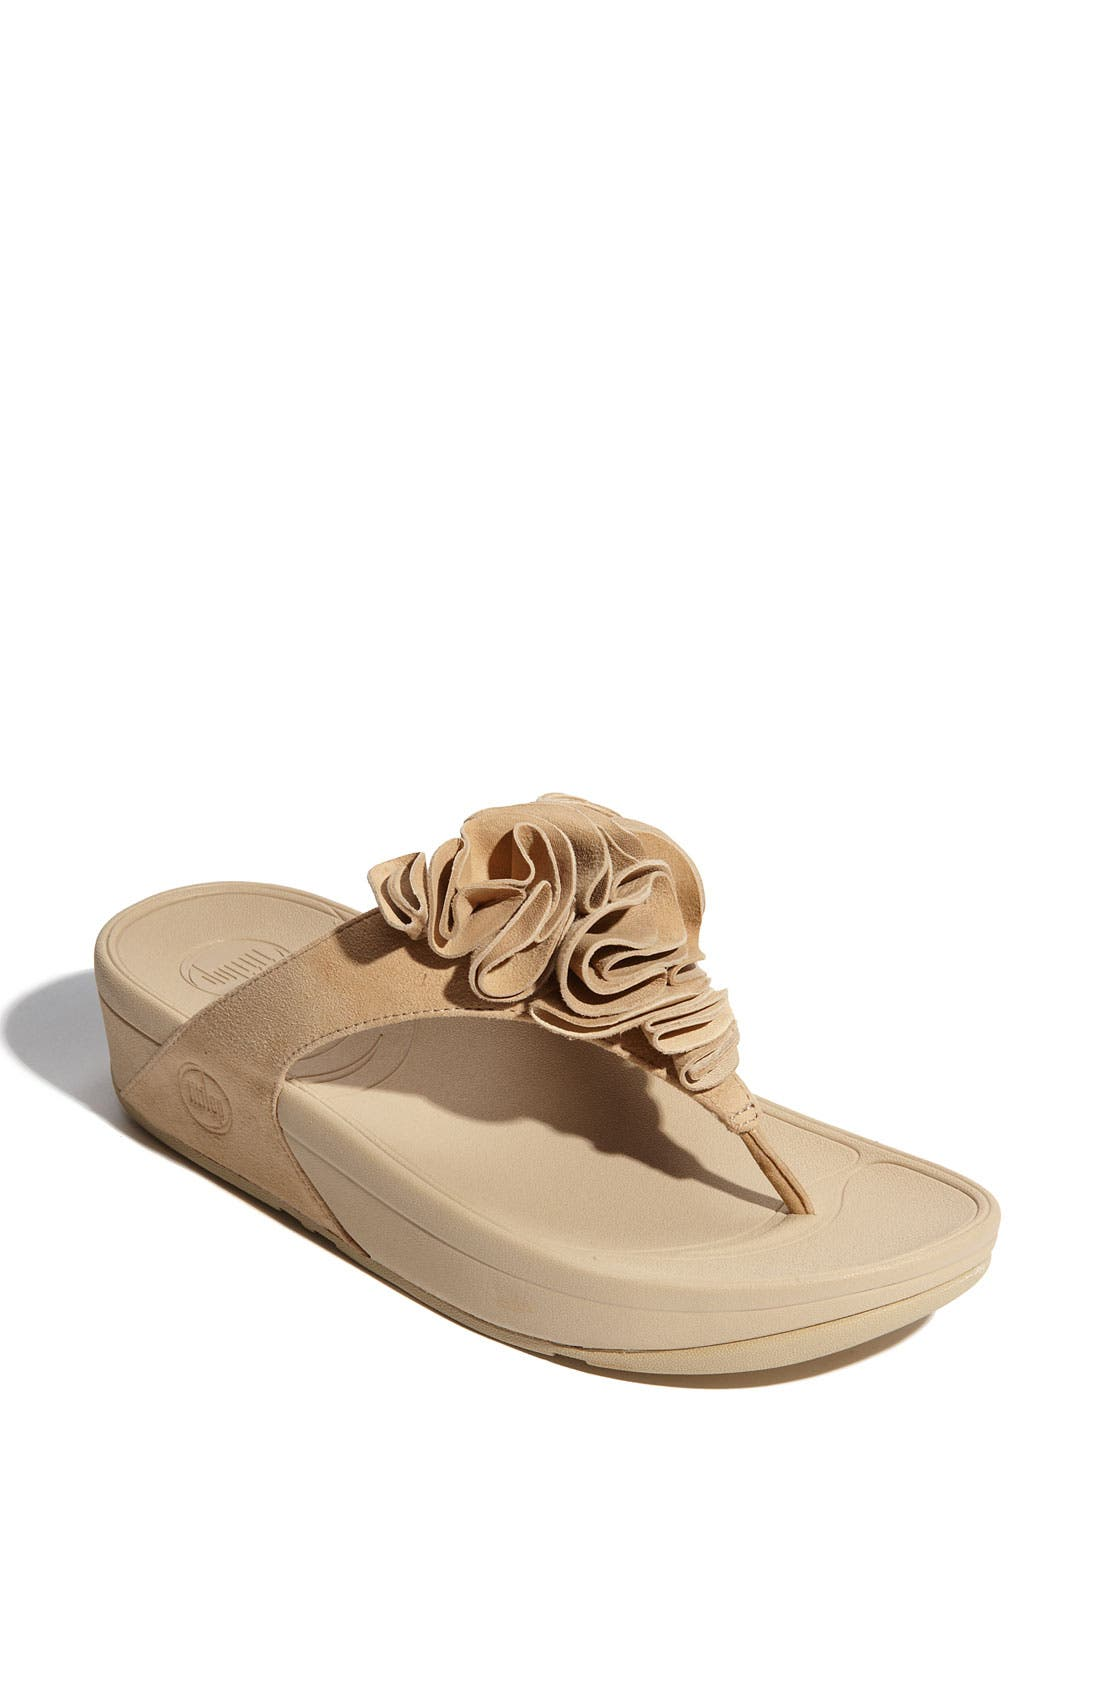 Main Image - FitFlop 'Frou™' Sandal